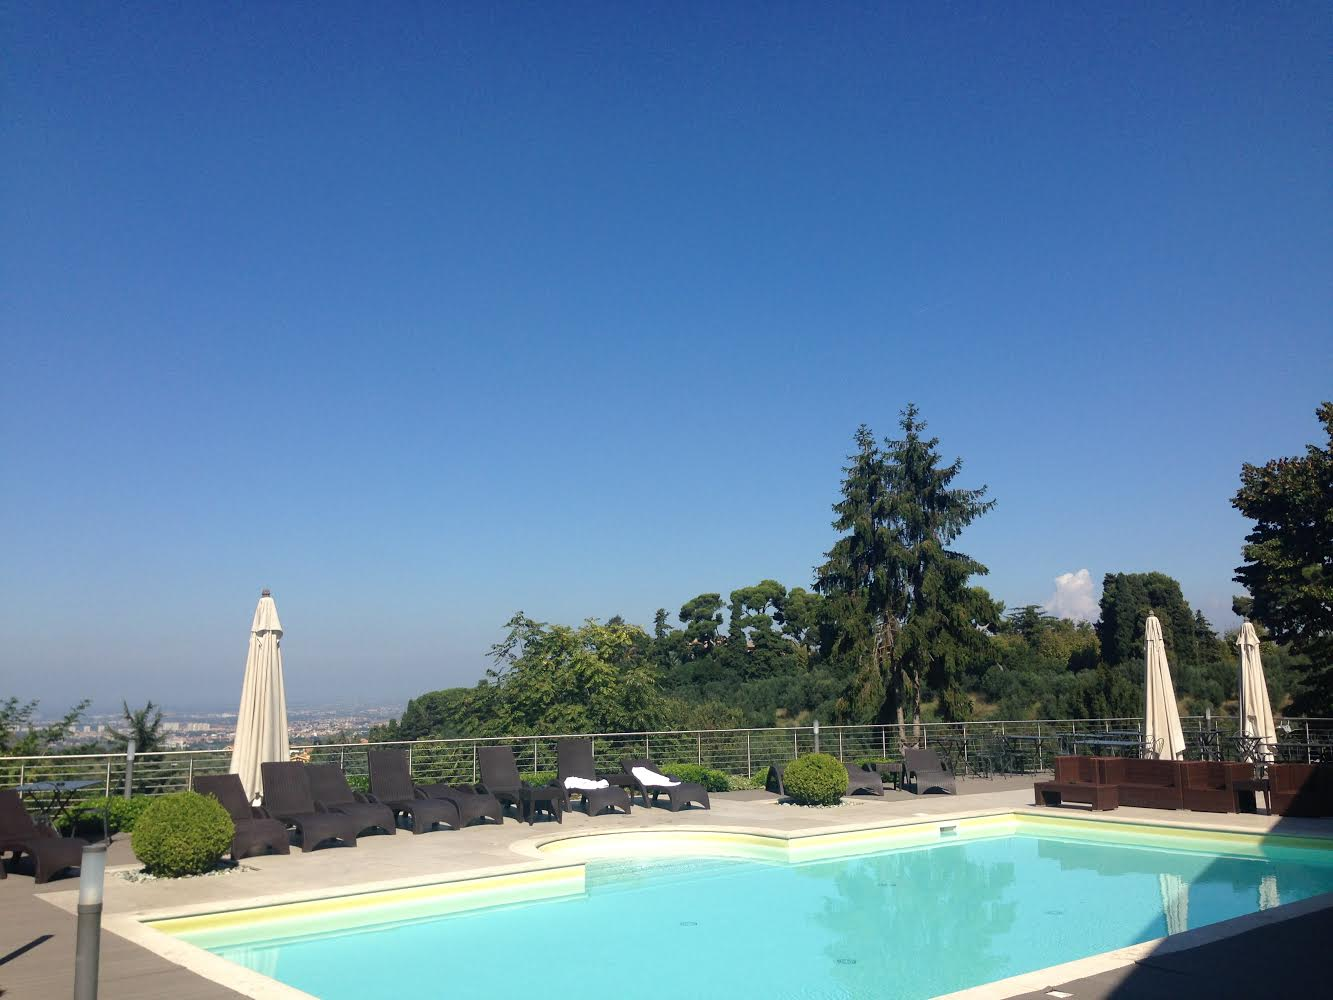 A pool with a non-so-bad view! This is Villa Mercede located in the heart of Frascati.